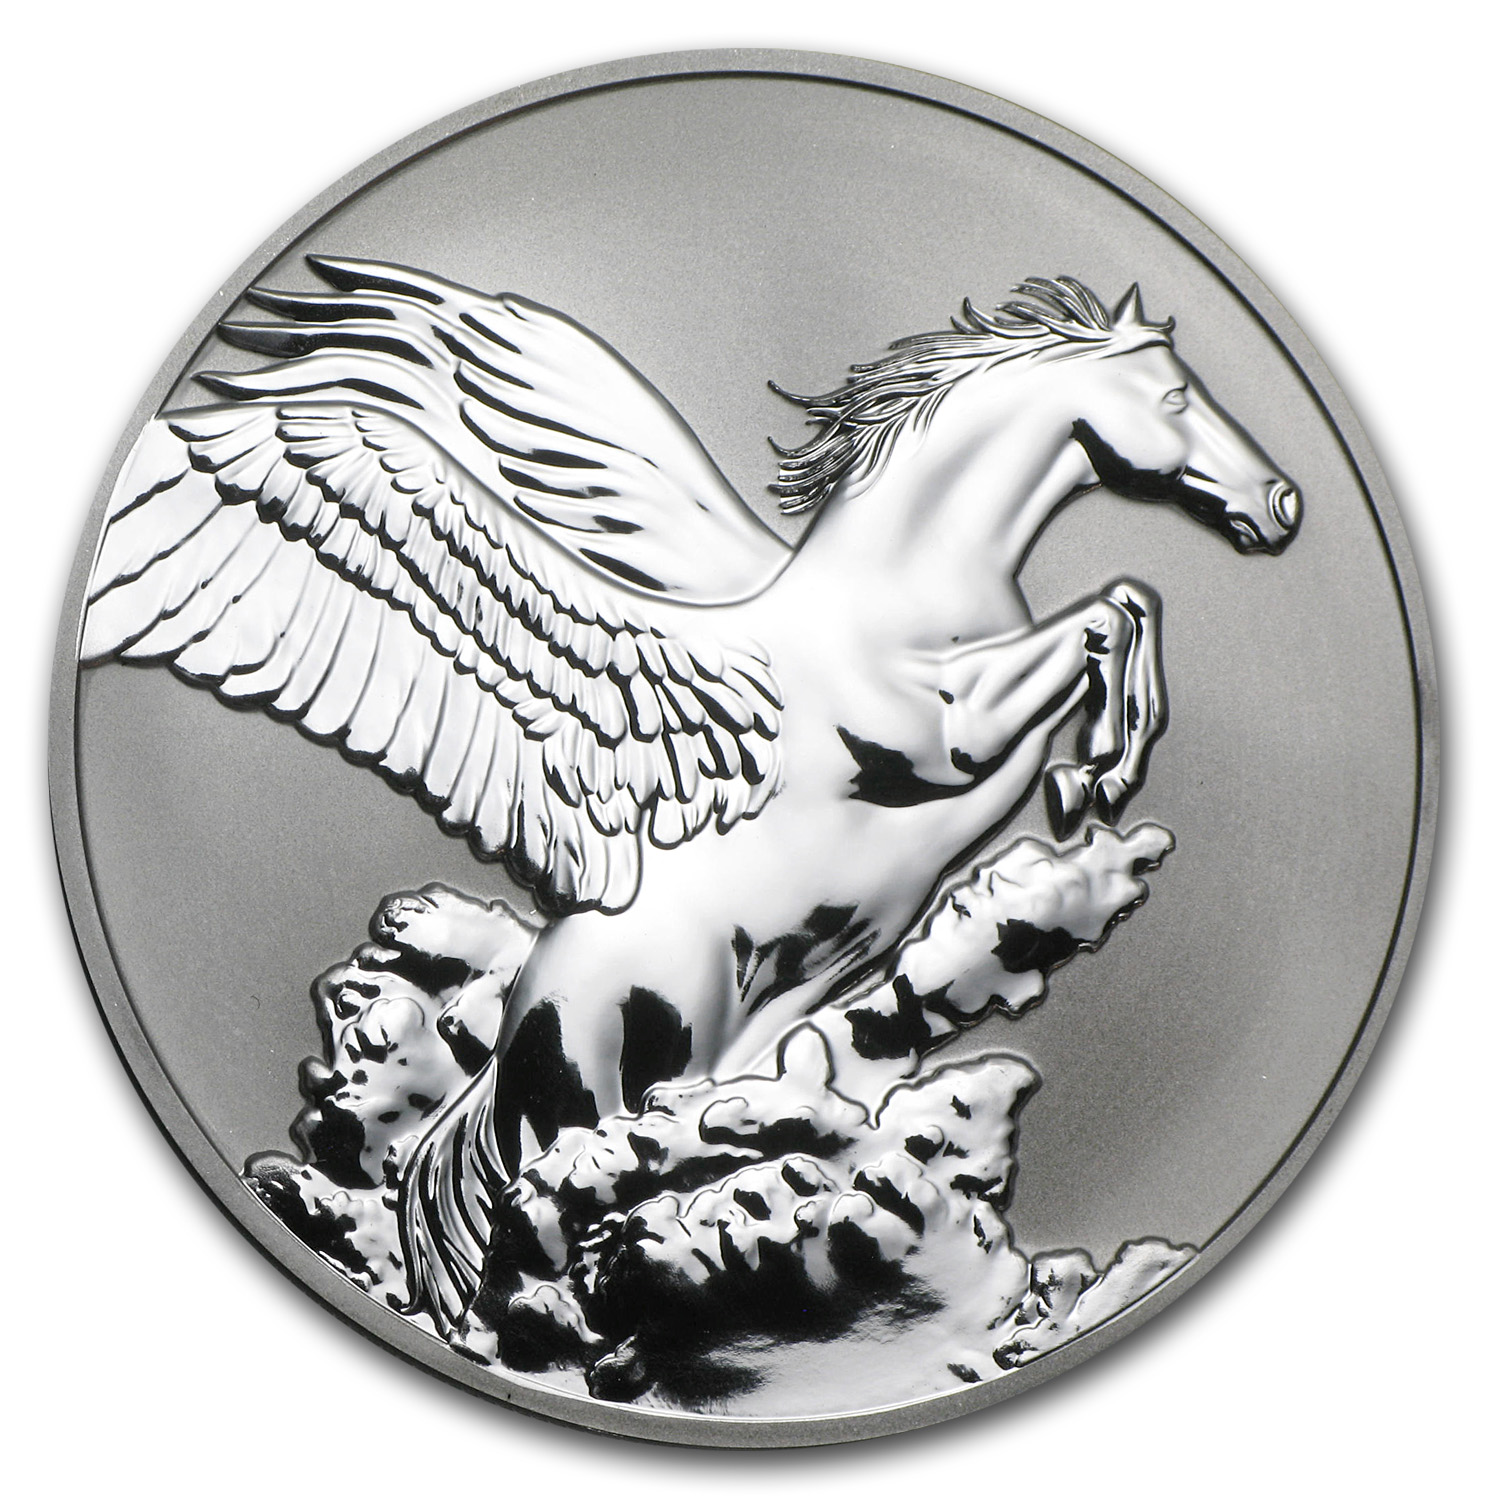 2014 Tokelau 1 oz Silver $5 Pegasus Reverse Proof